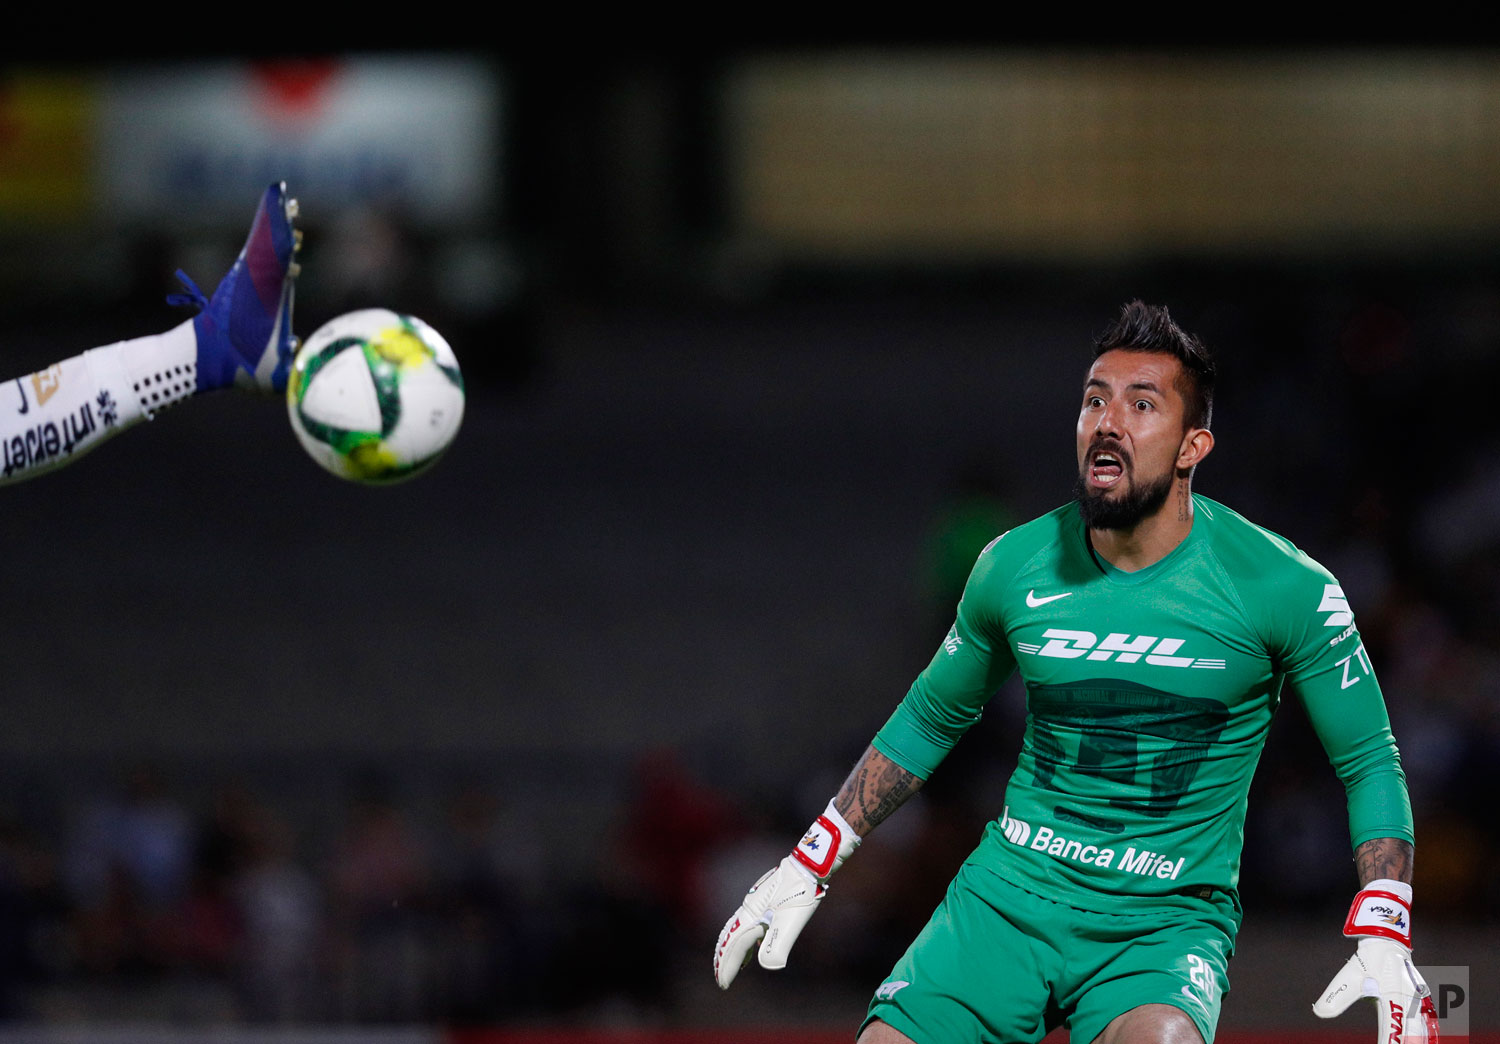 Pumas' goalkeeper Miguel Fraga watches as a scoring attempt by Dorados is intercepted by teammate Alan Mendoza, in their Copa MX quarterfinal match at Olympic University Stadium in Mexico City, Tuesday, March 12, 2019. (AP Photo/Rebecca Blackwell)